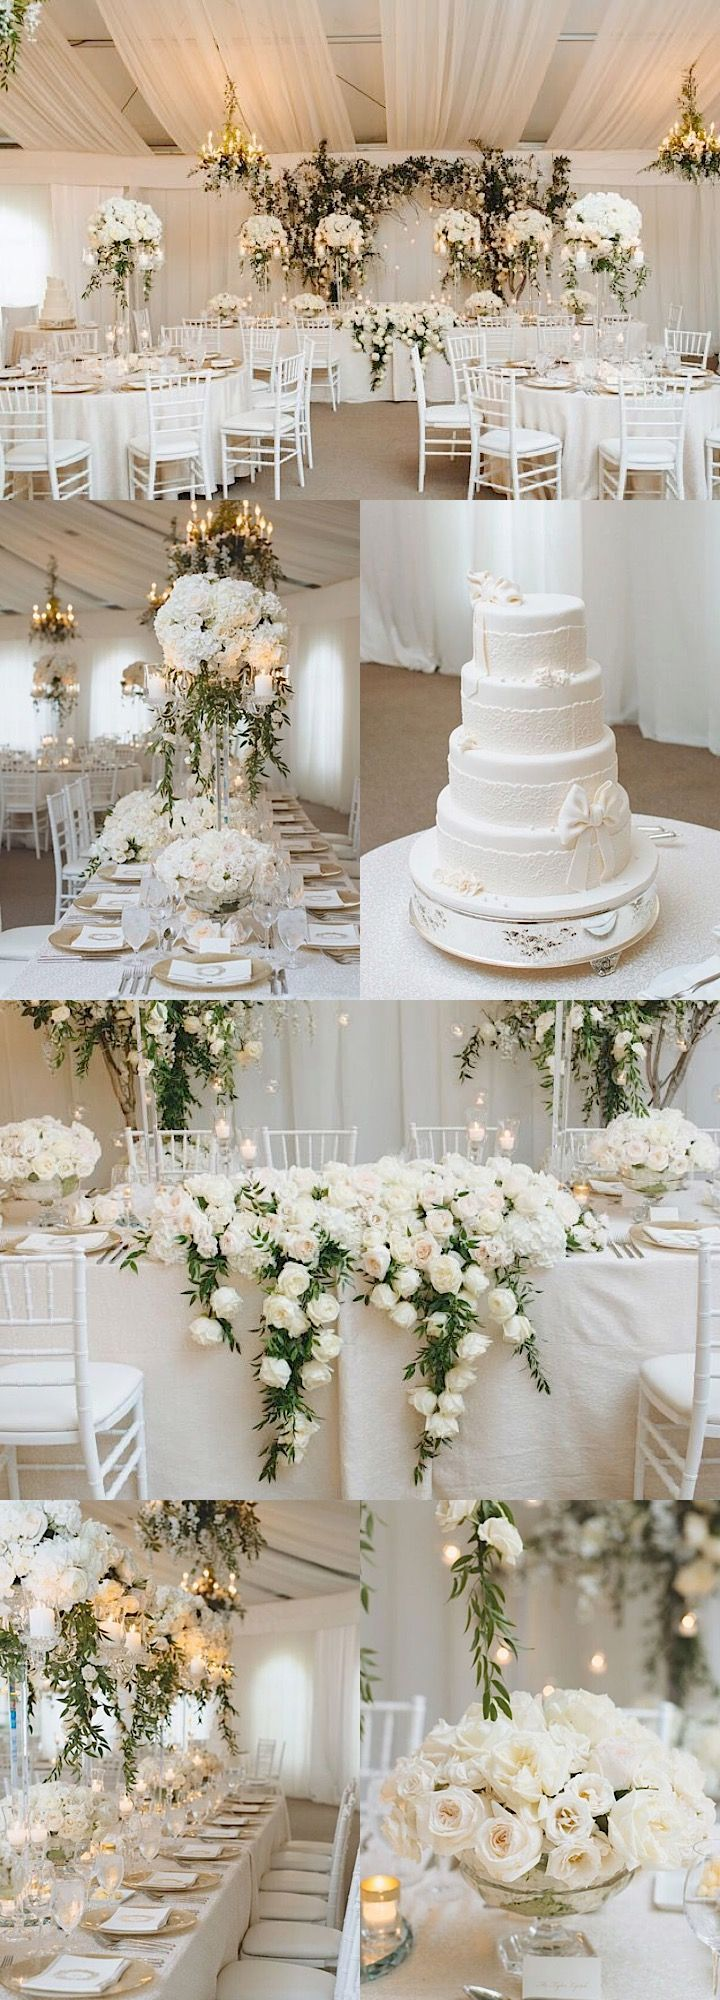 Elegant White Wedding Reception Idea Photo Mango Studios